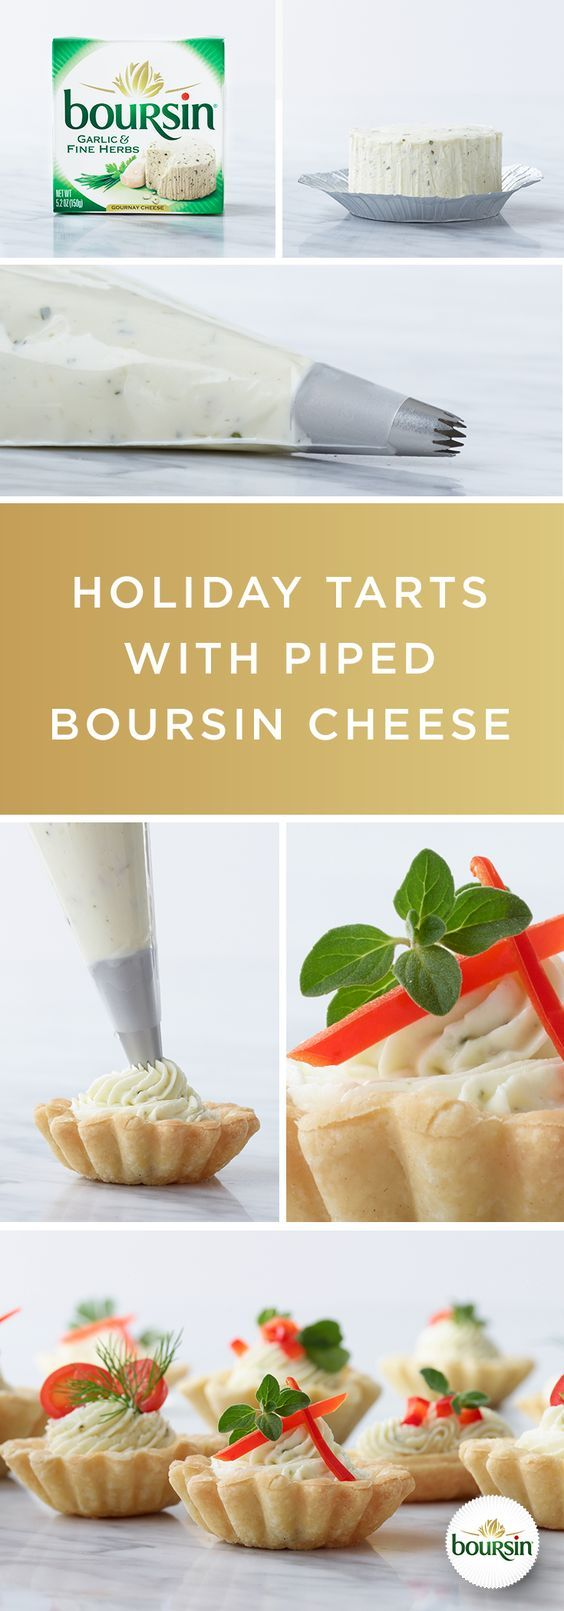 There's more than one way to enjoy Boursin cheese. Simply fill a piping bag with the Boursin cheese of your choice and squeeze it onto a freshly baked tart. Garnish with peppers, dill, and other red and green toppings to give your guests the gift of good taste.